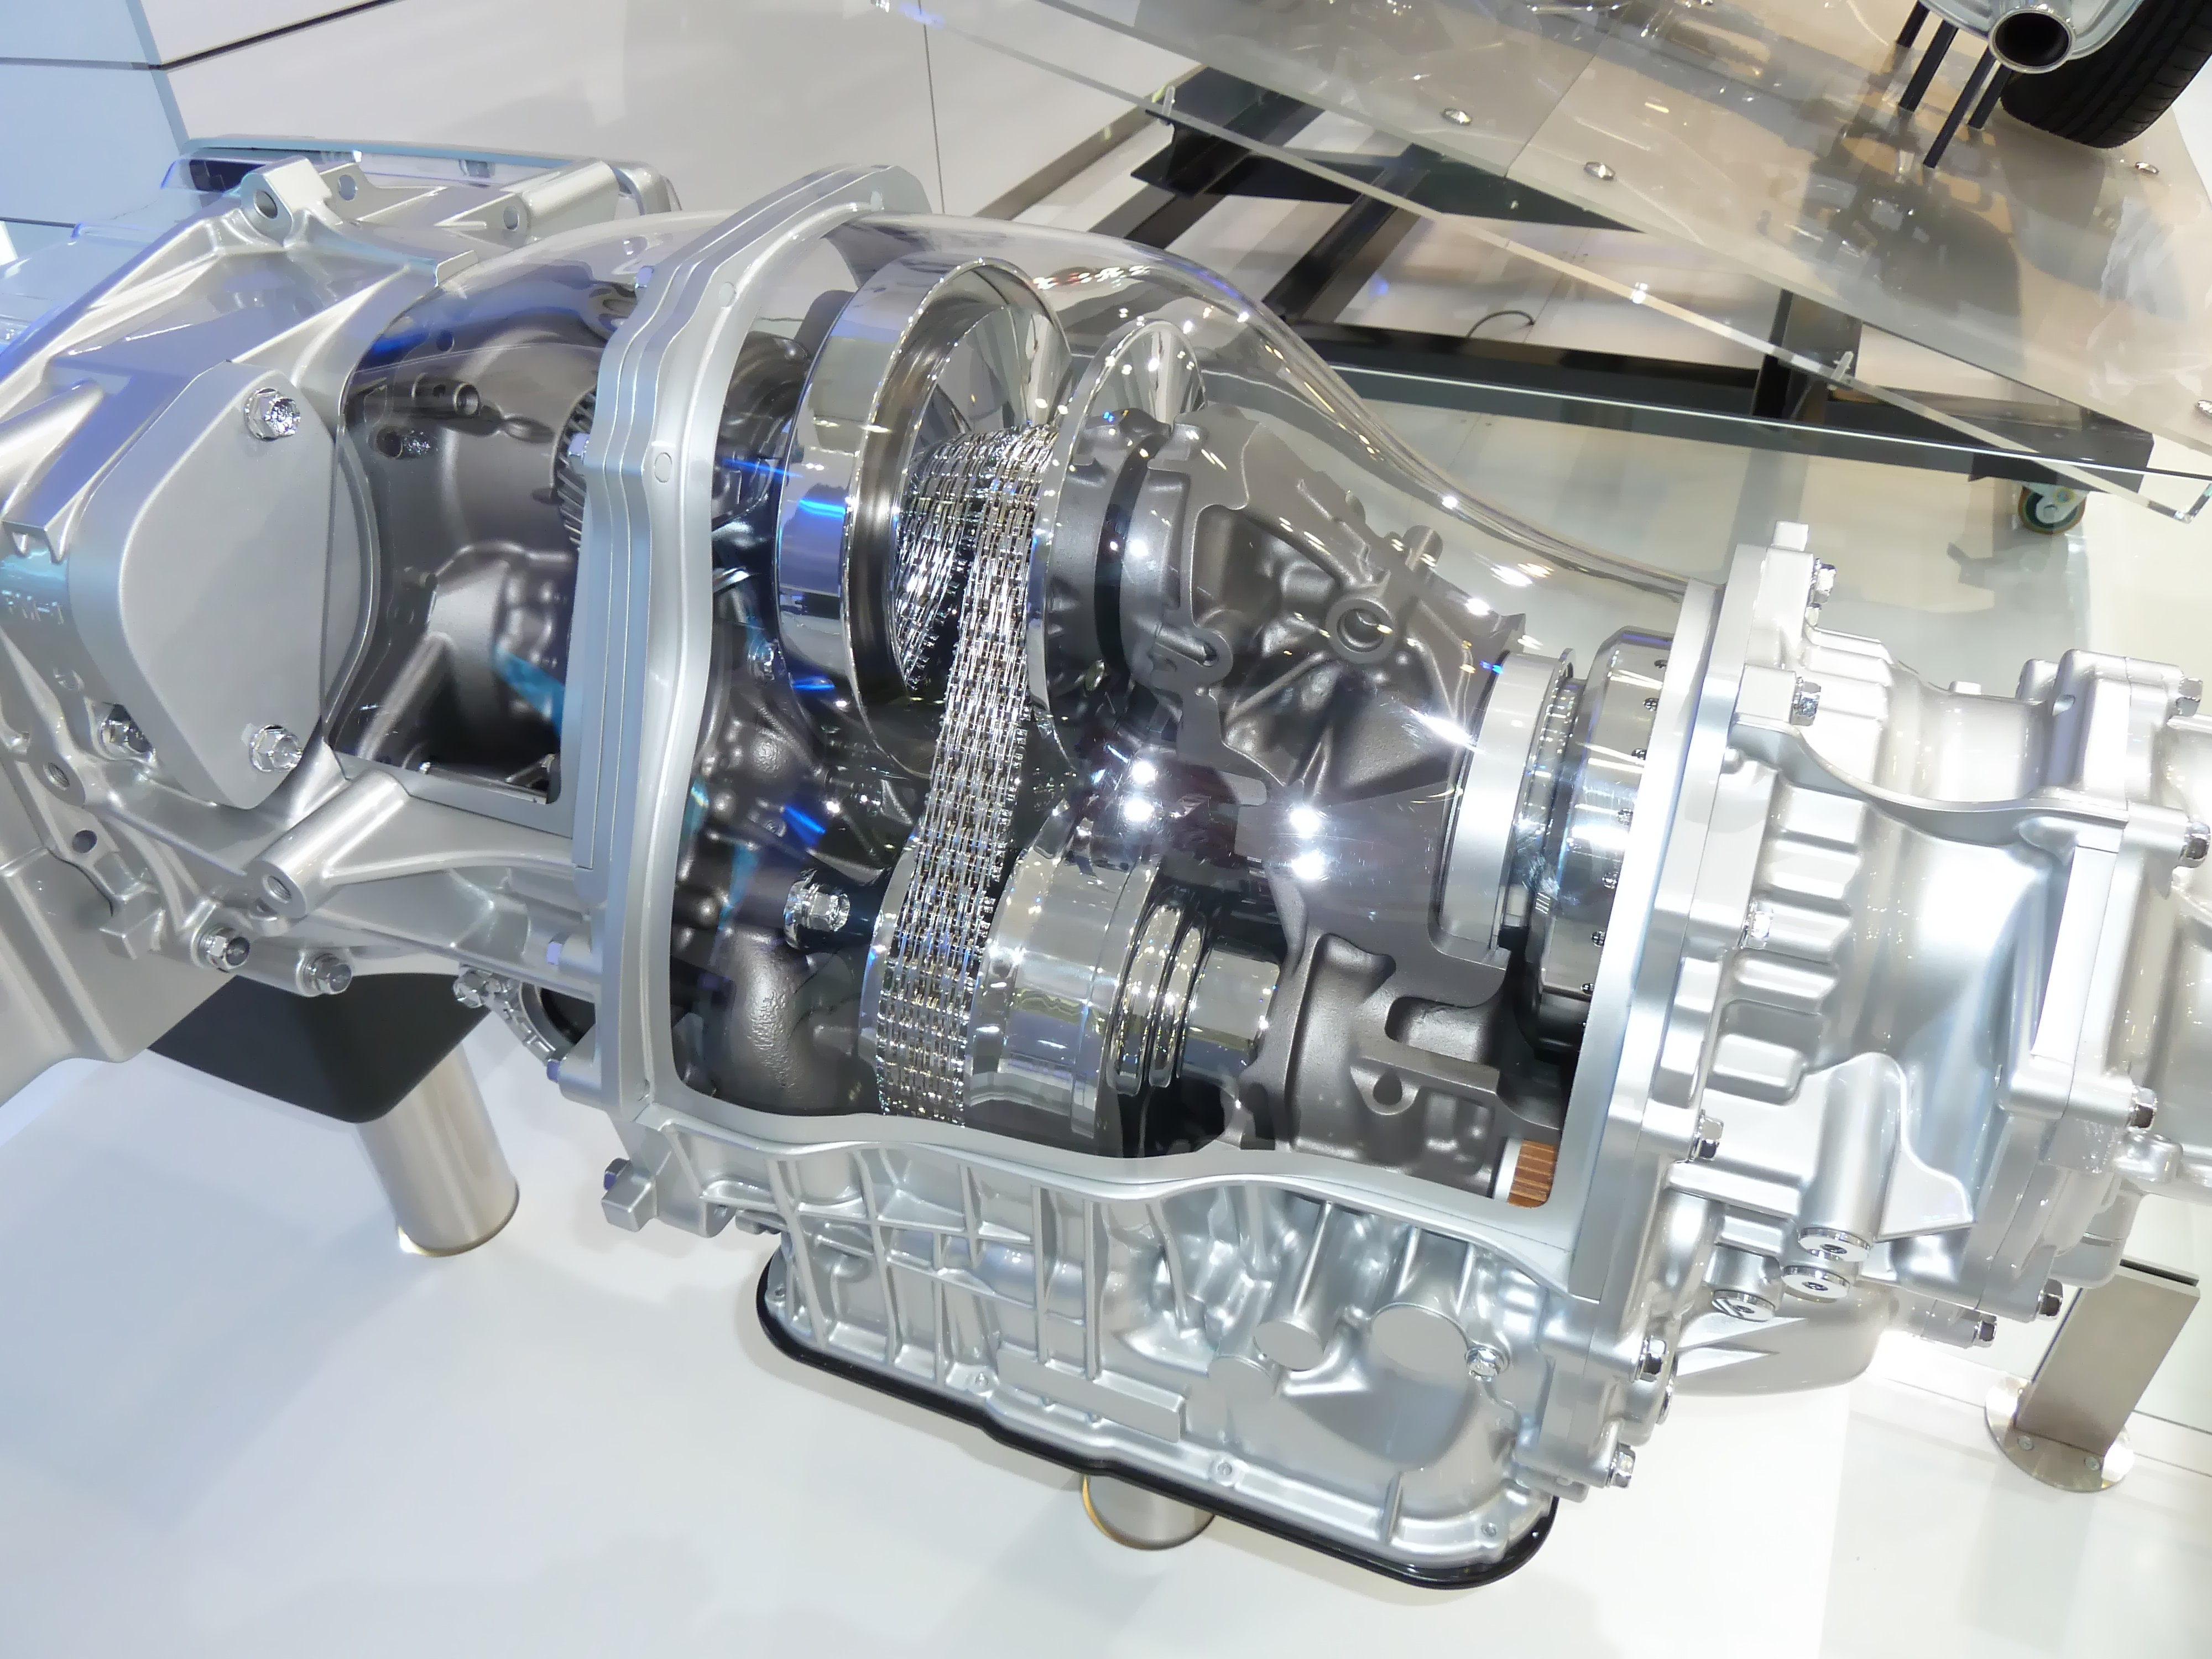 File:Subaru Lineartronic continuously variable transmission (2010 ...